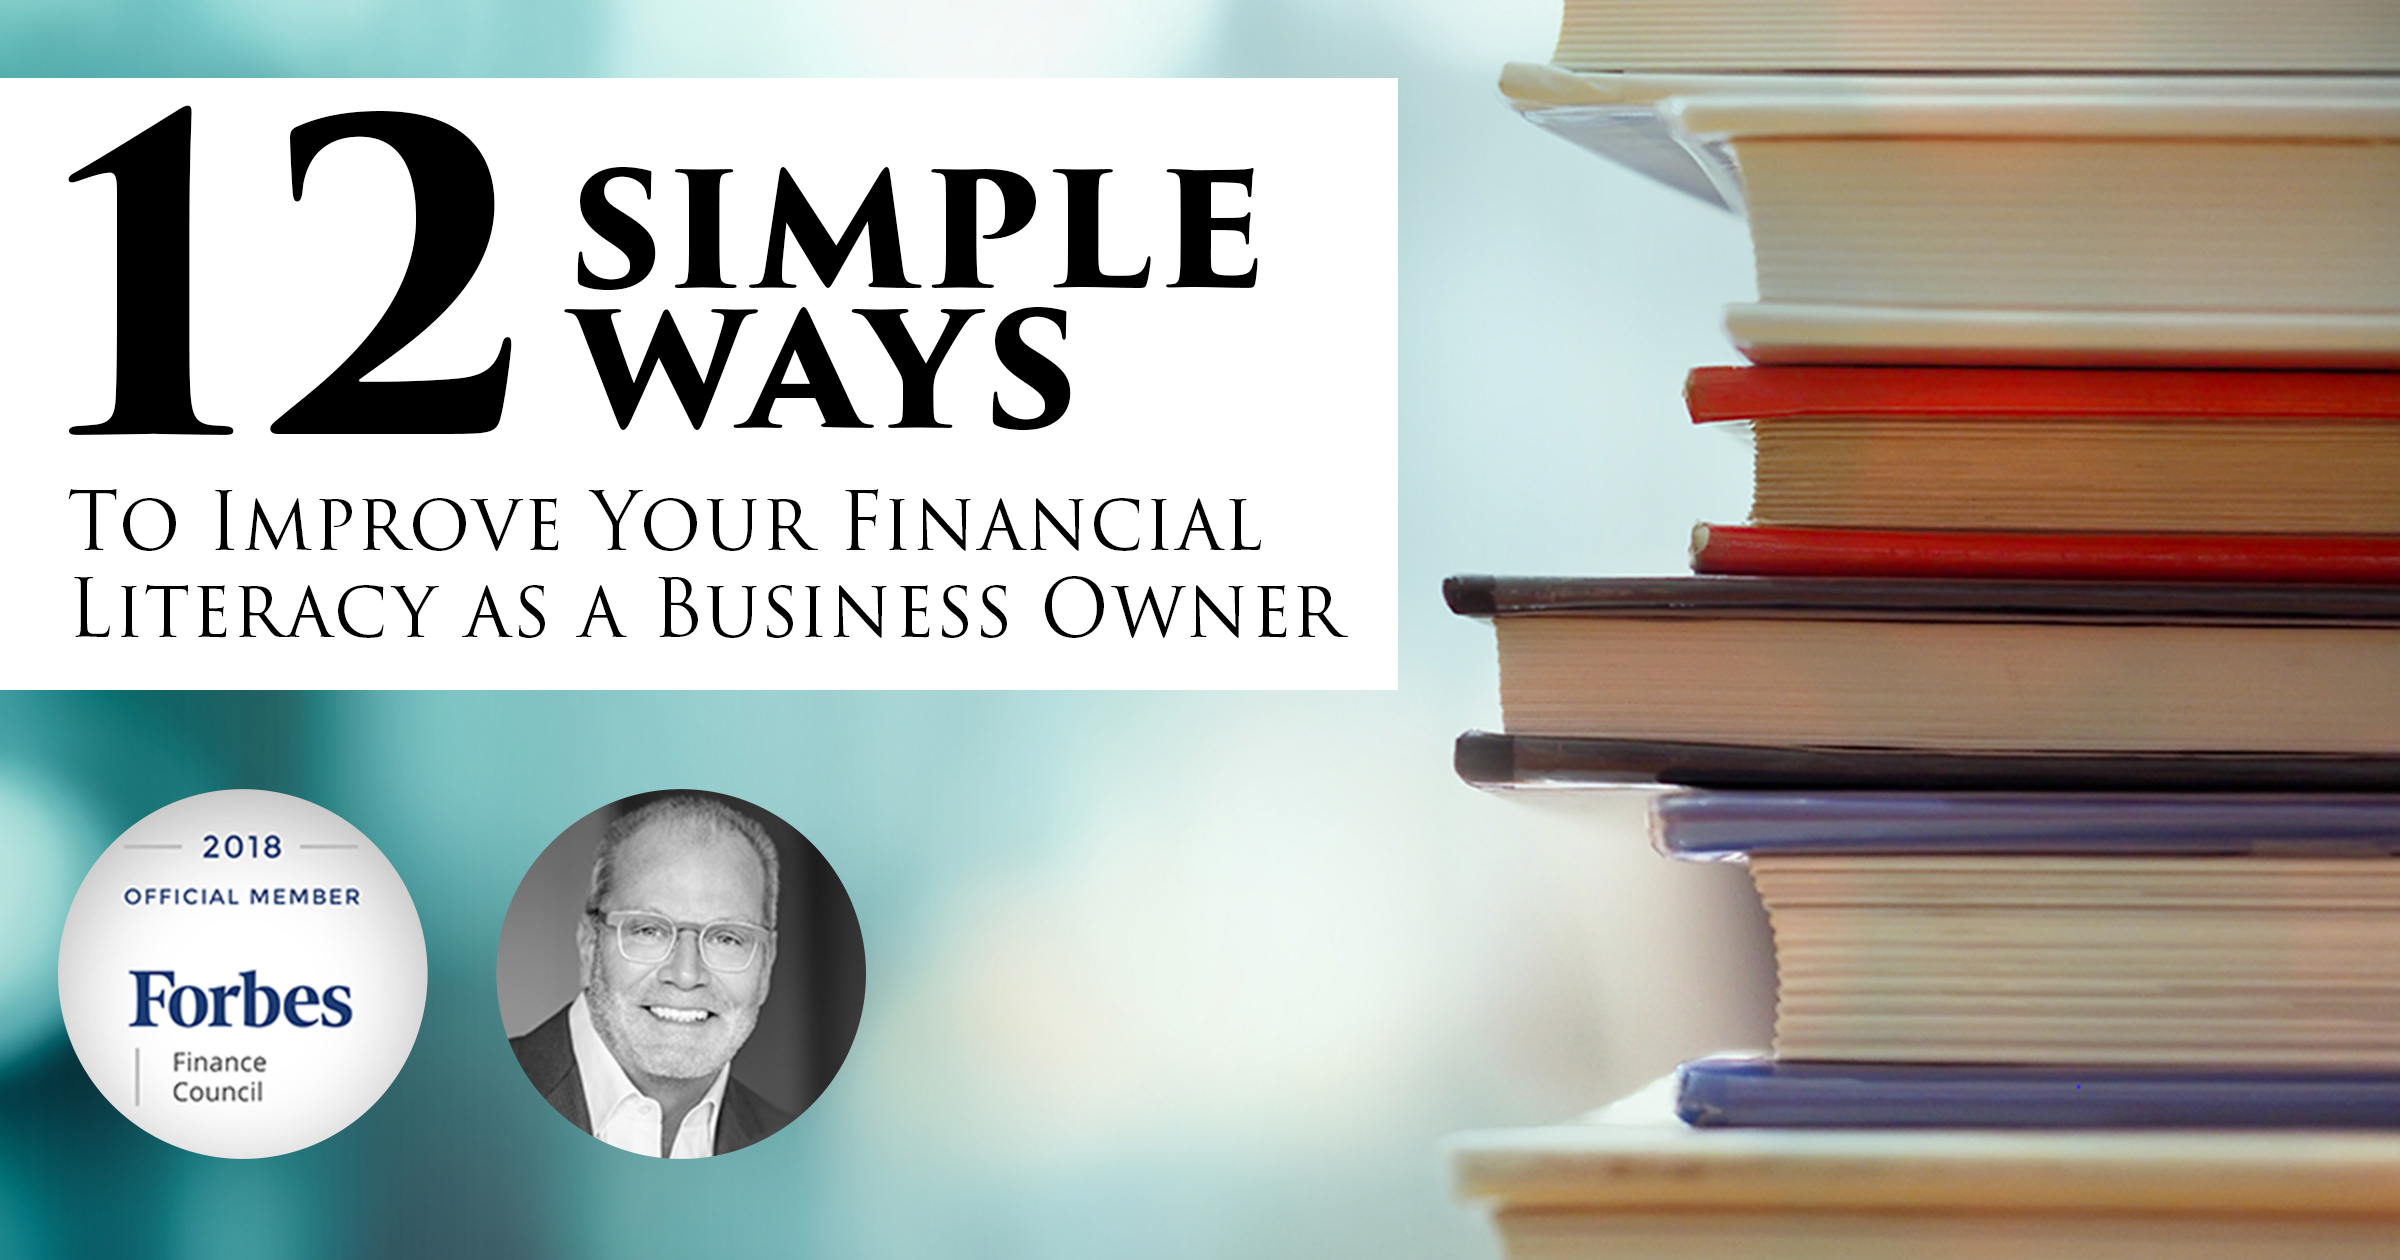 12 Simple Ways to Improve Your Financial Literacy as a Business Owner